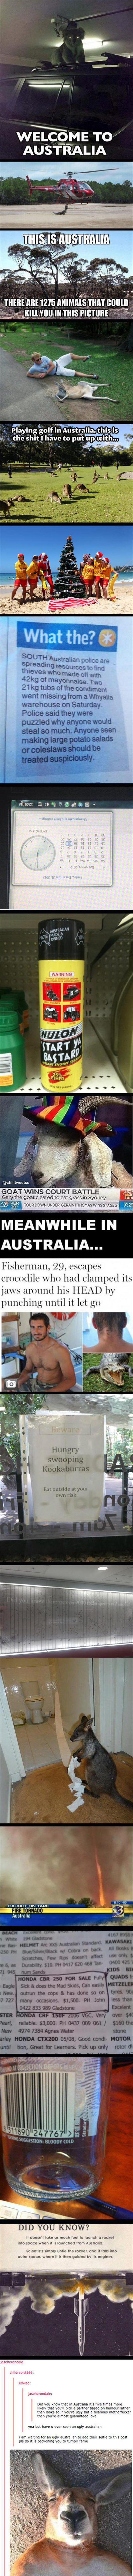 welcome to Australia funny pictures